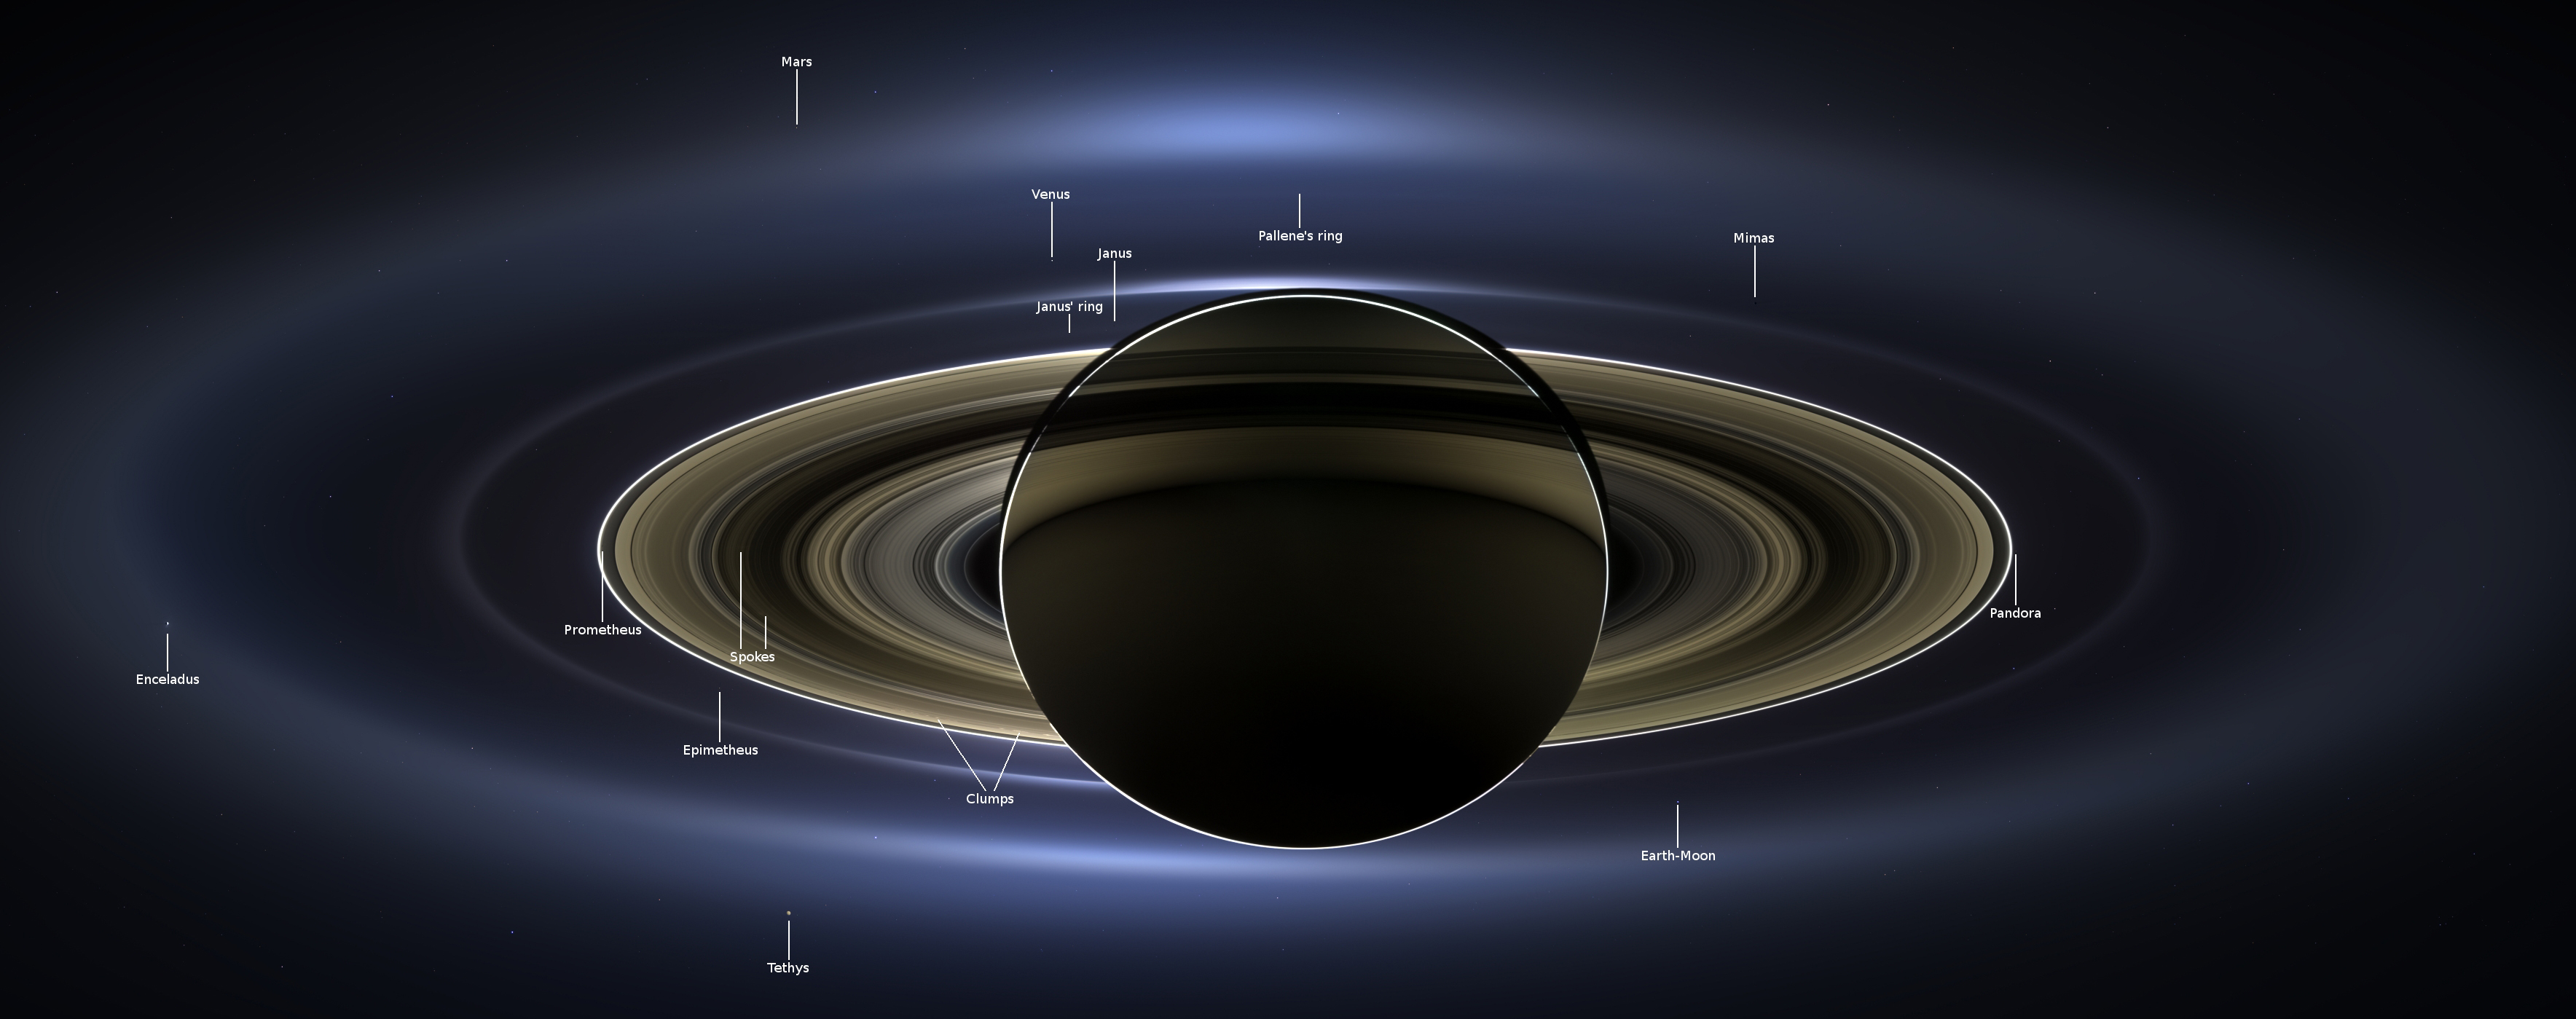 Mimas Moon Fun Facts The Day The Earth Smiled Cassini S Newest Full Panorama Of